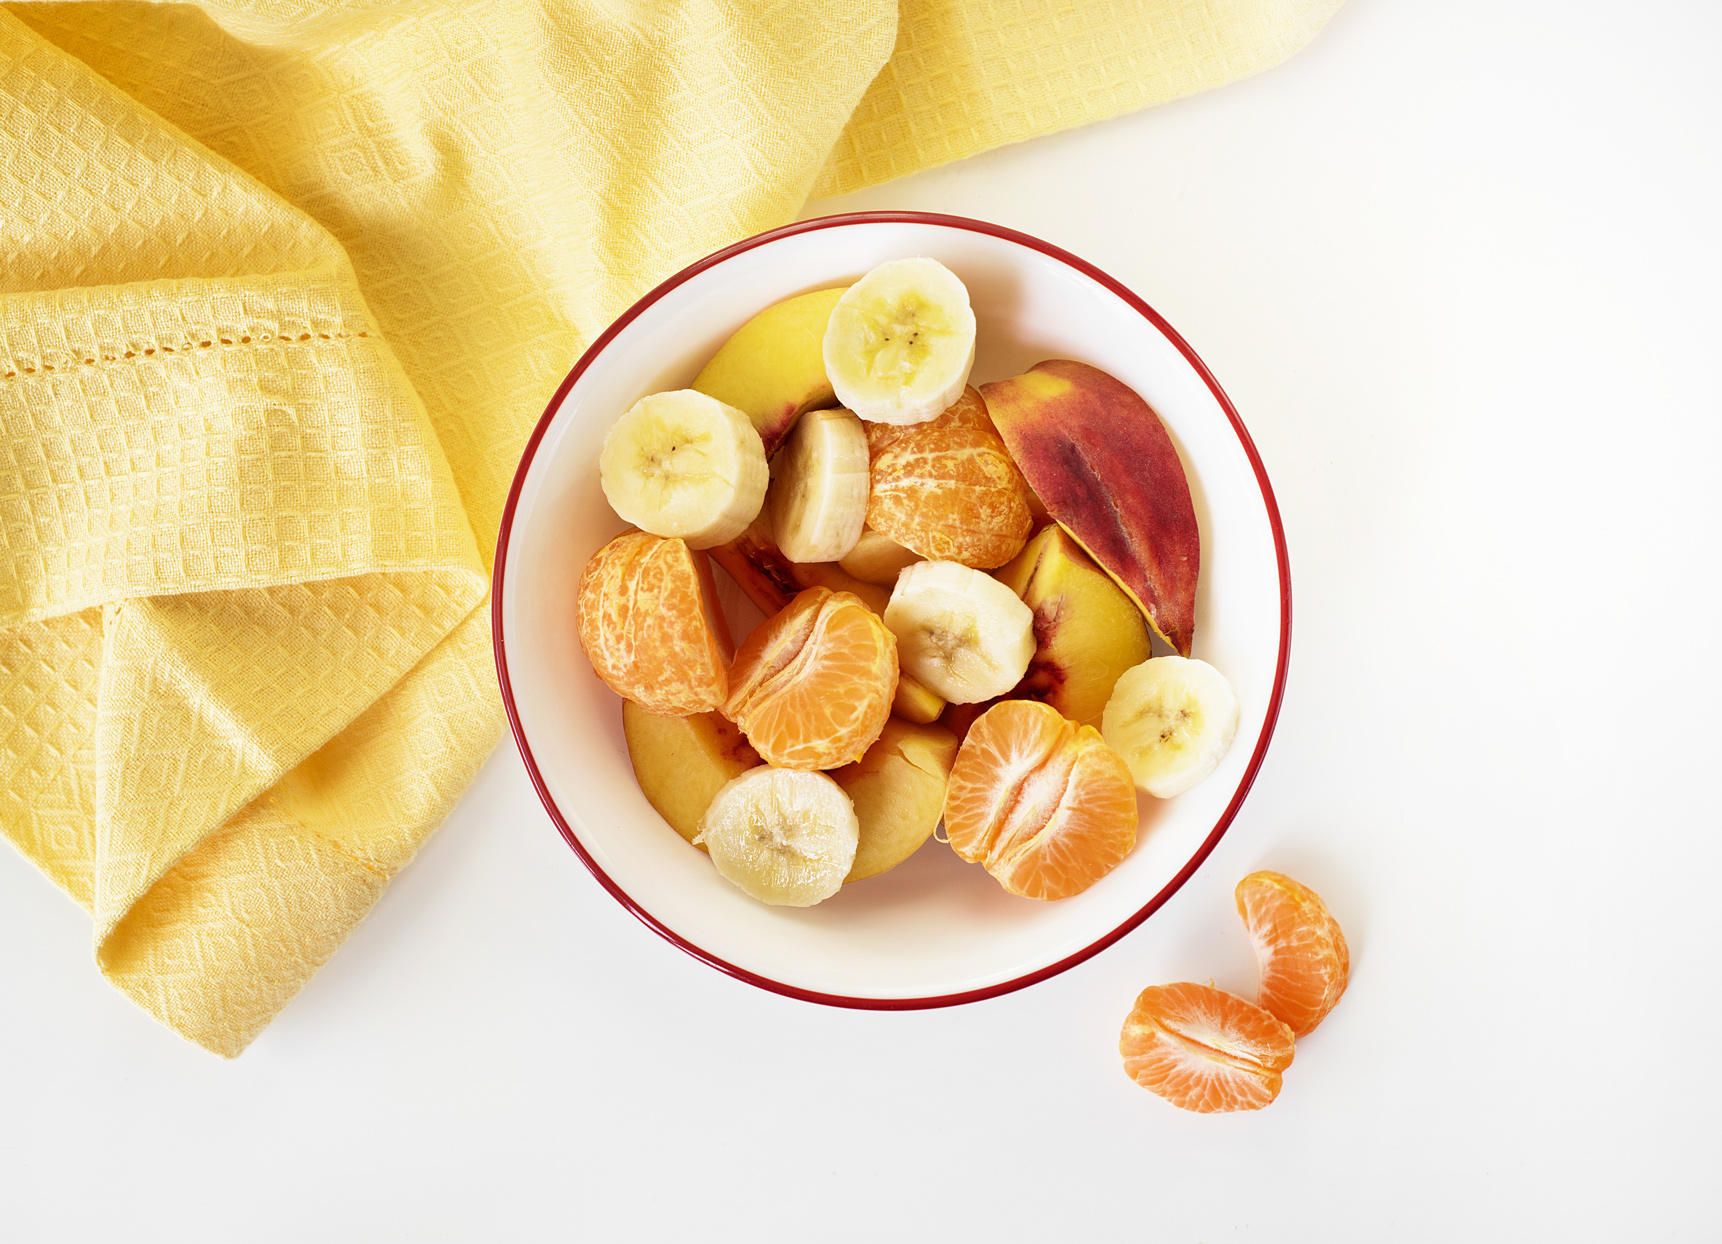 citrus fruit in a bowl with yellow towel